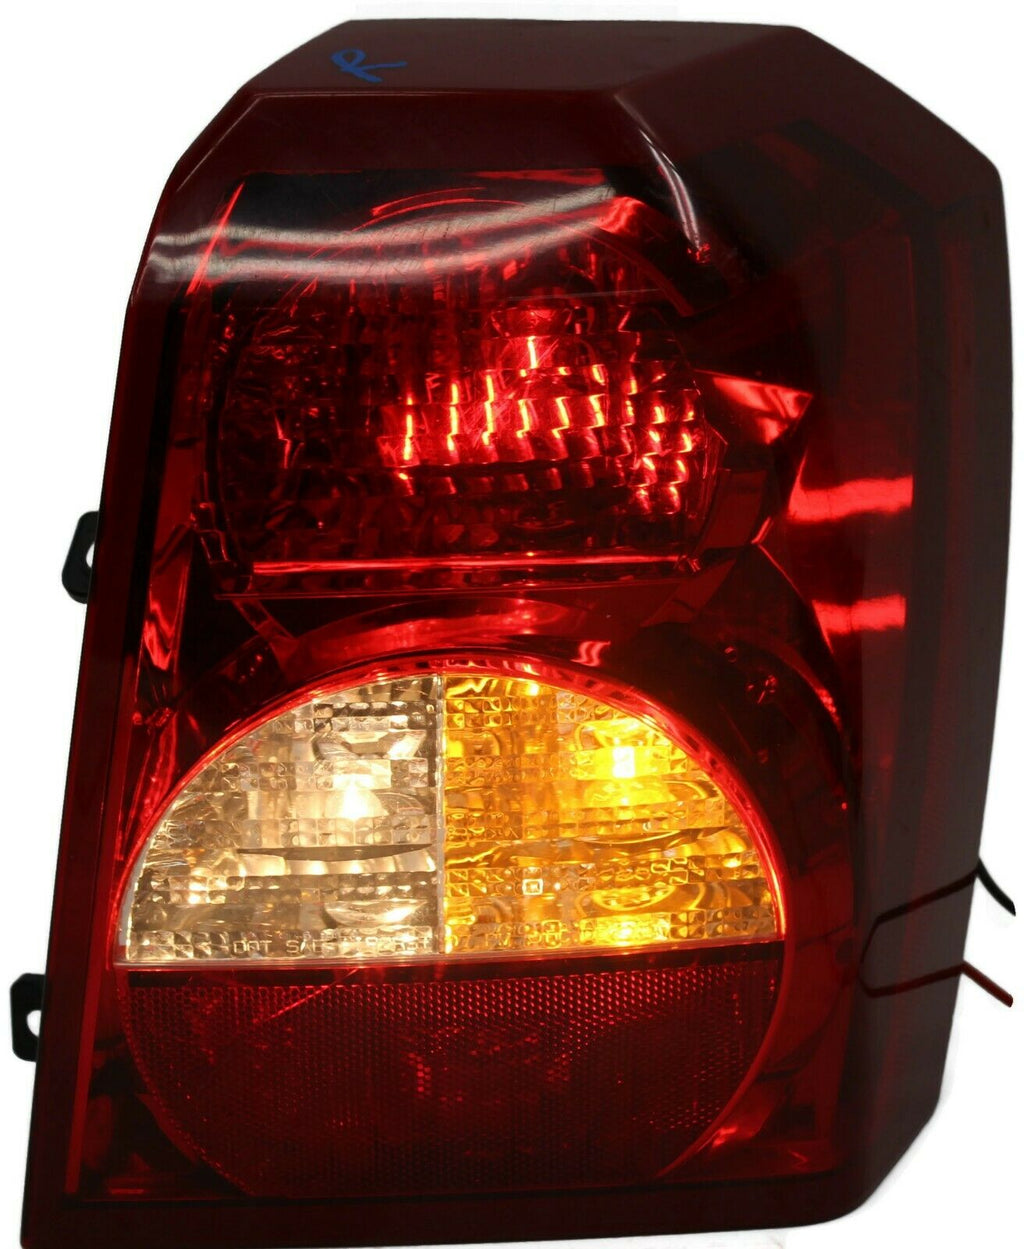 2006-2012 Dodge Caliber Passenger Right Side Rear Tail Light 05303752AE